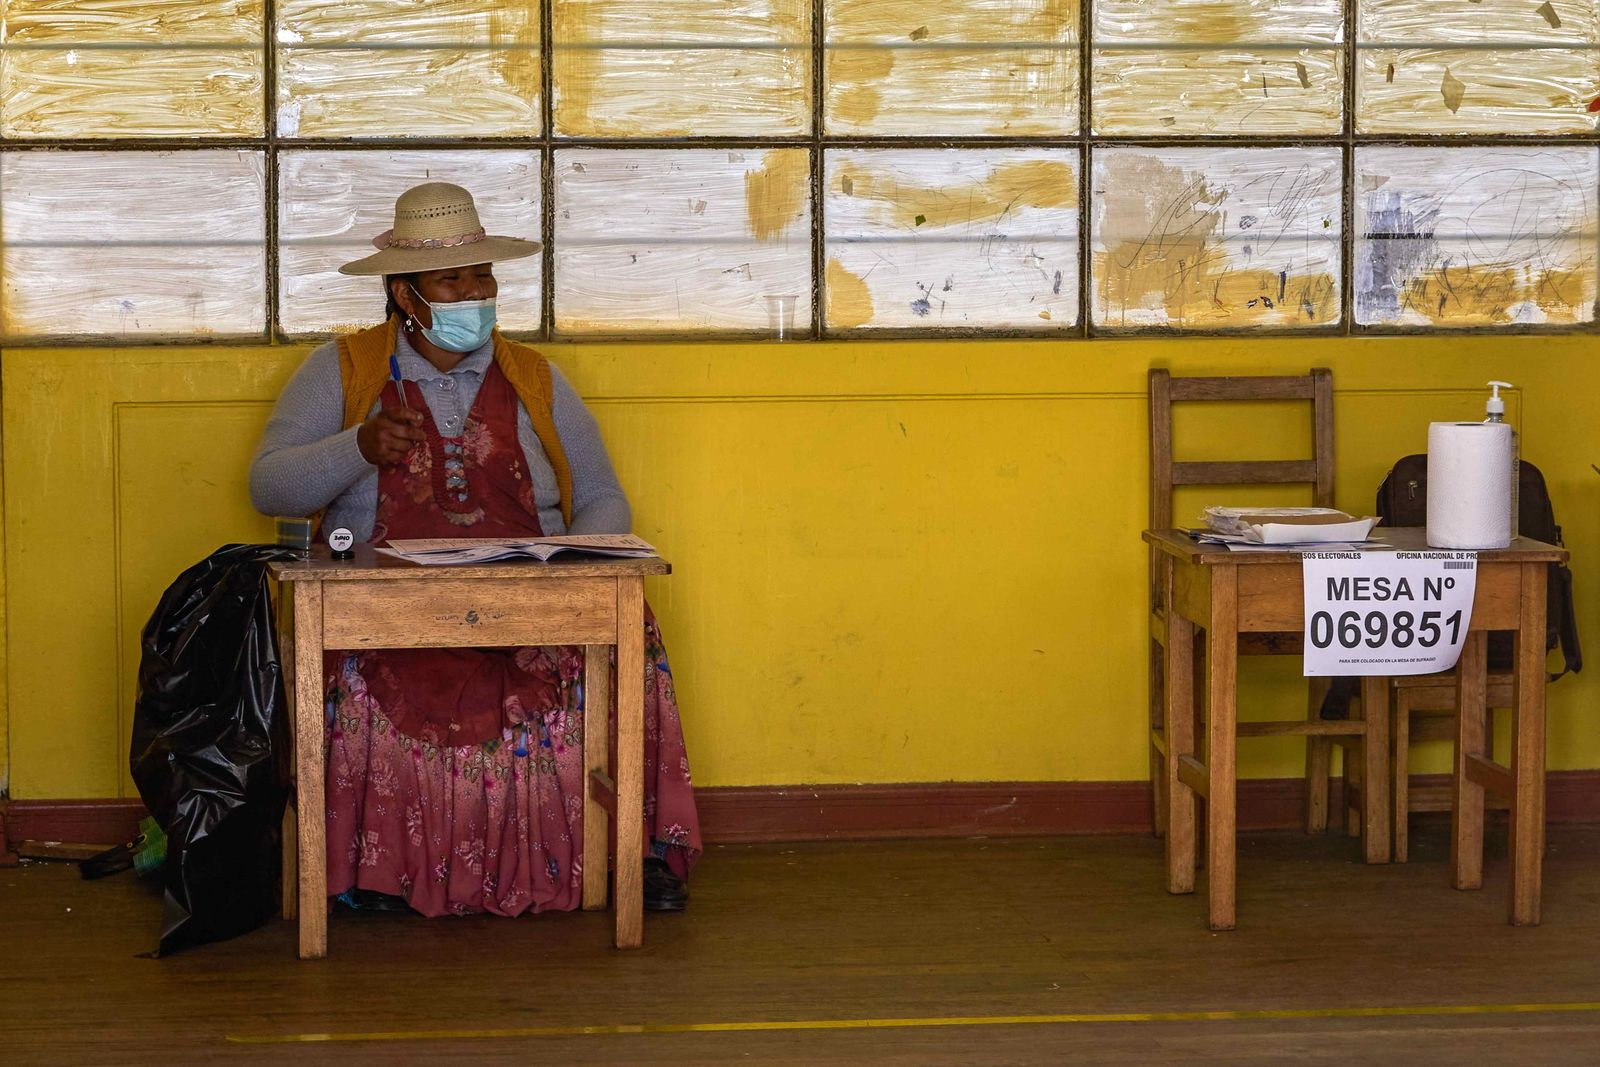 Election day begins to elect the president of 2021-2026 in Peru